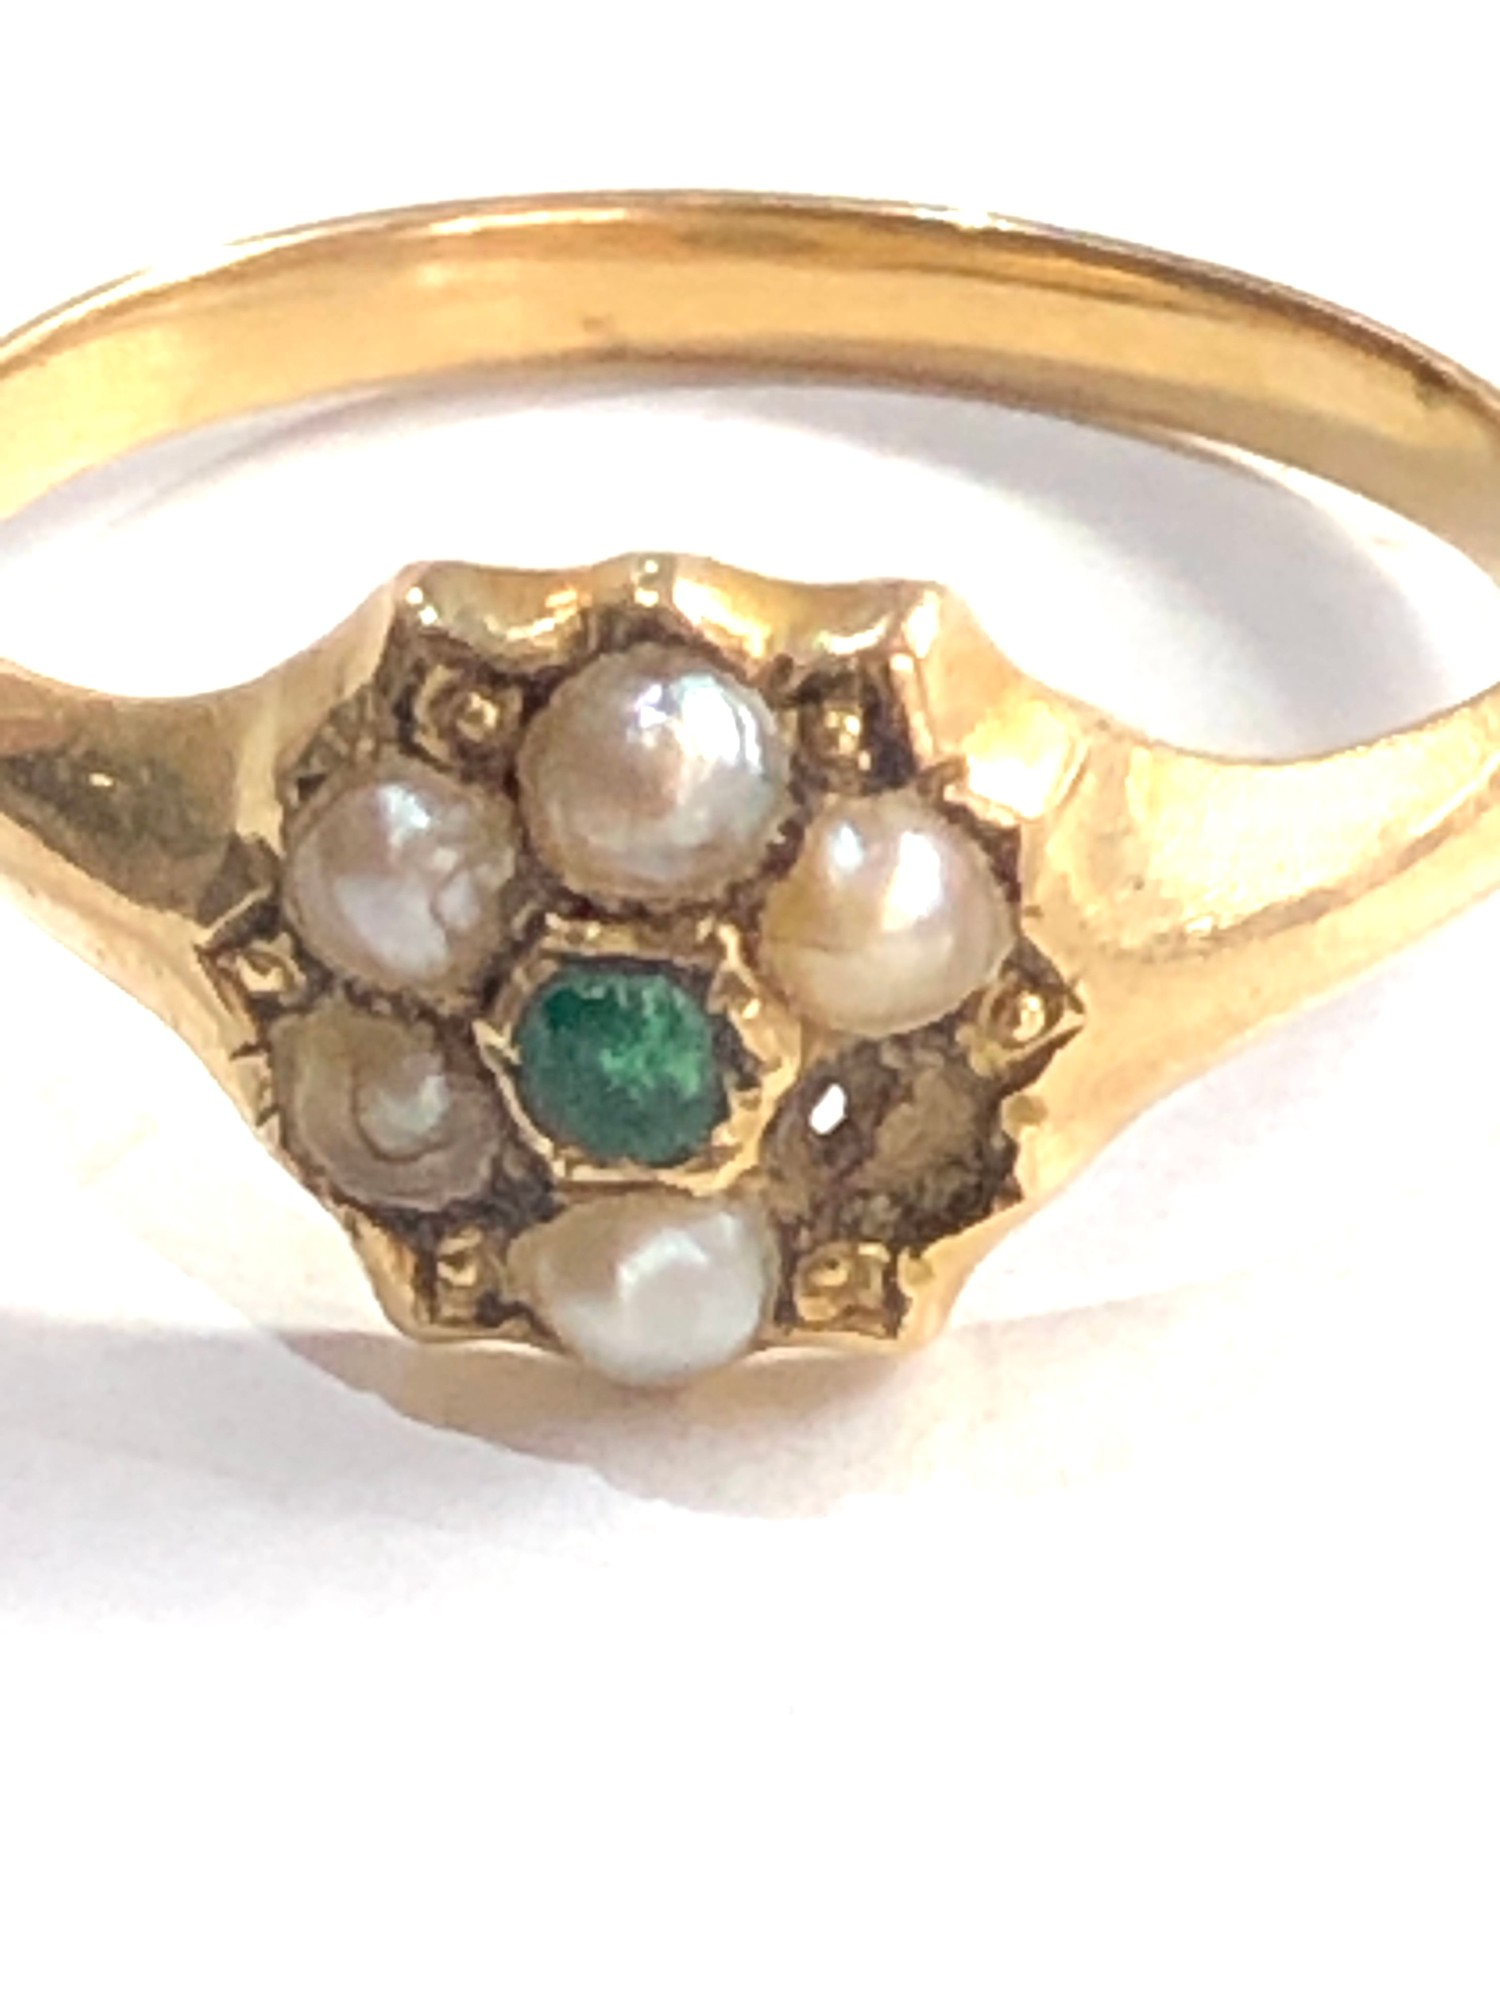 Antique 15ct gold emerald and seed-pearl ring missing pearl weight 2g xrt as 15ct gold - Image 3 of 4